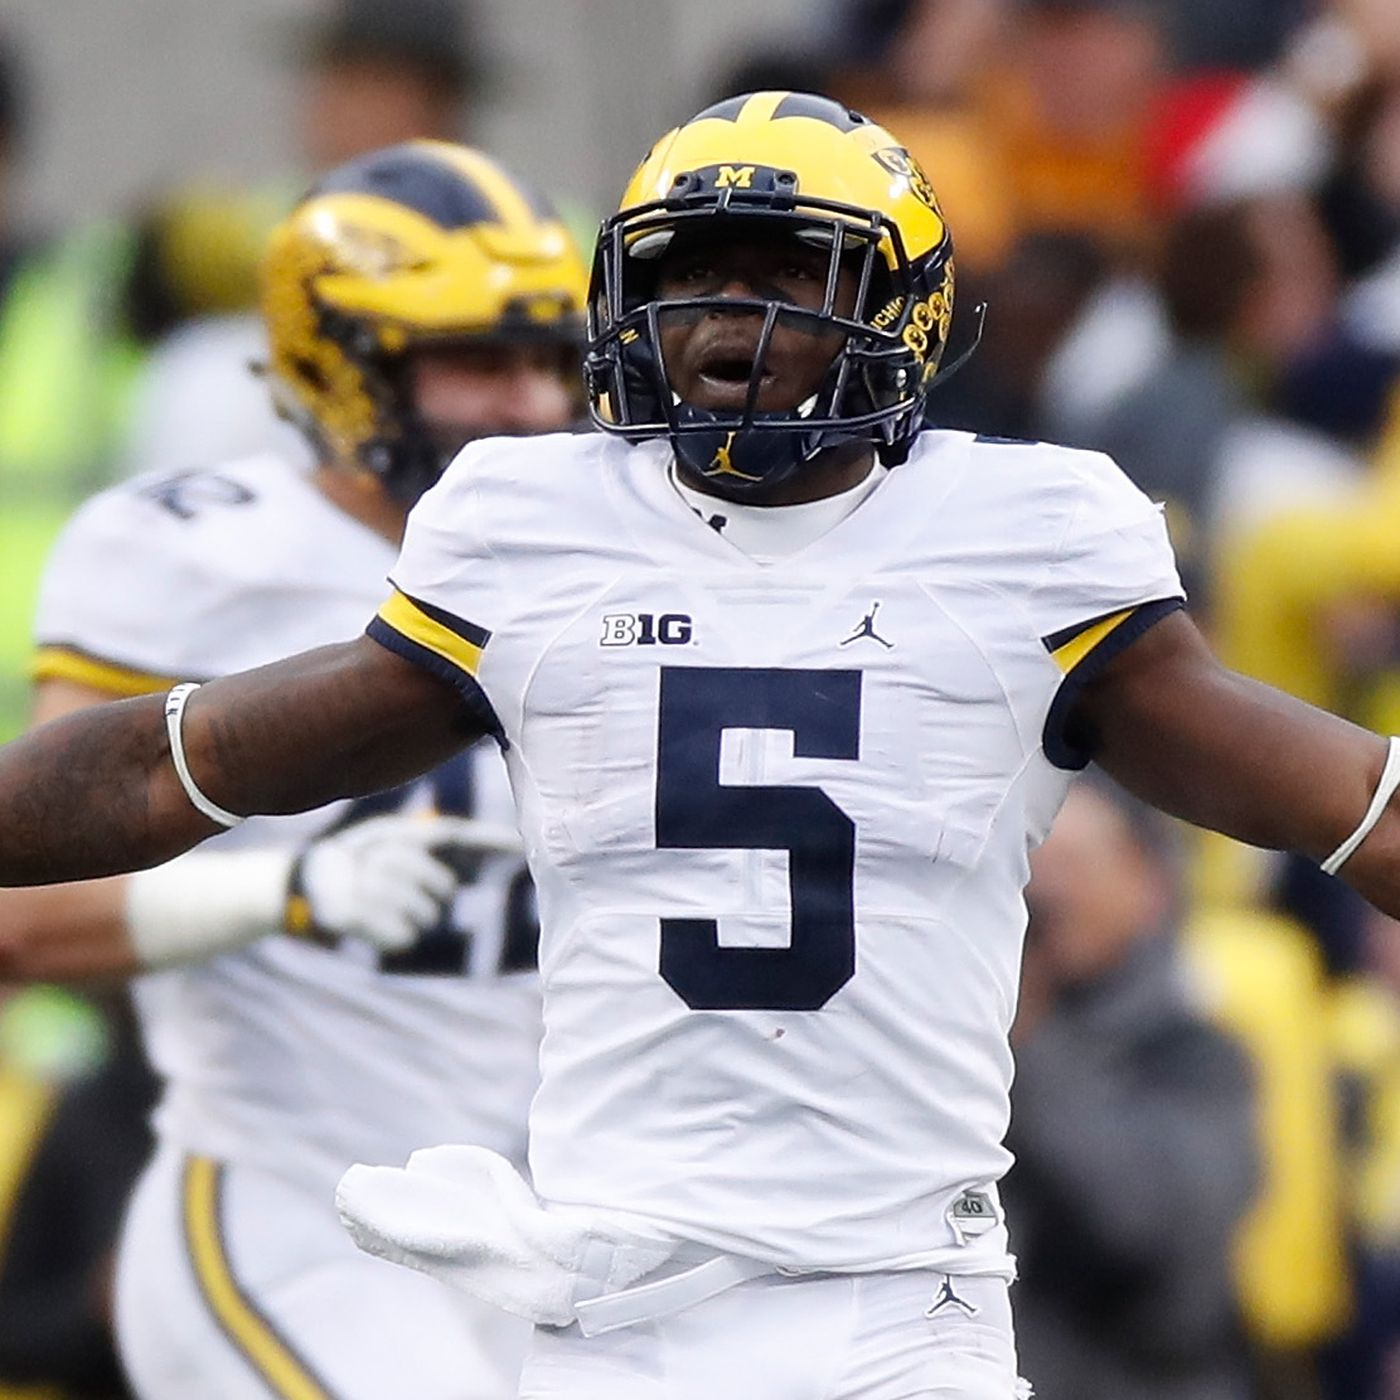 official photos 17706 8044e 2017 NFL Draft Results: Cleveland Browns Pick S Jabrill ...